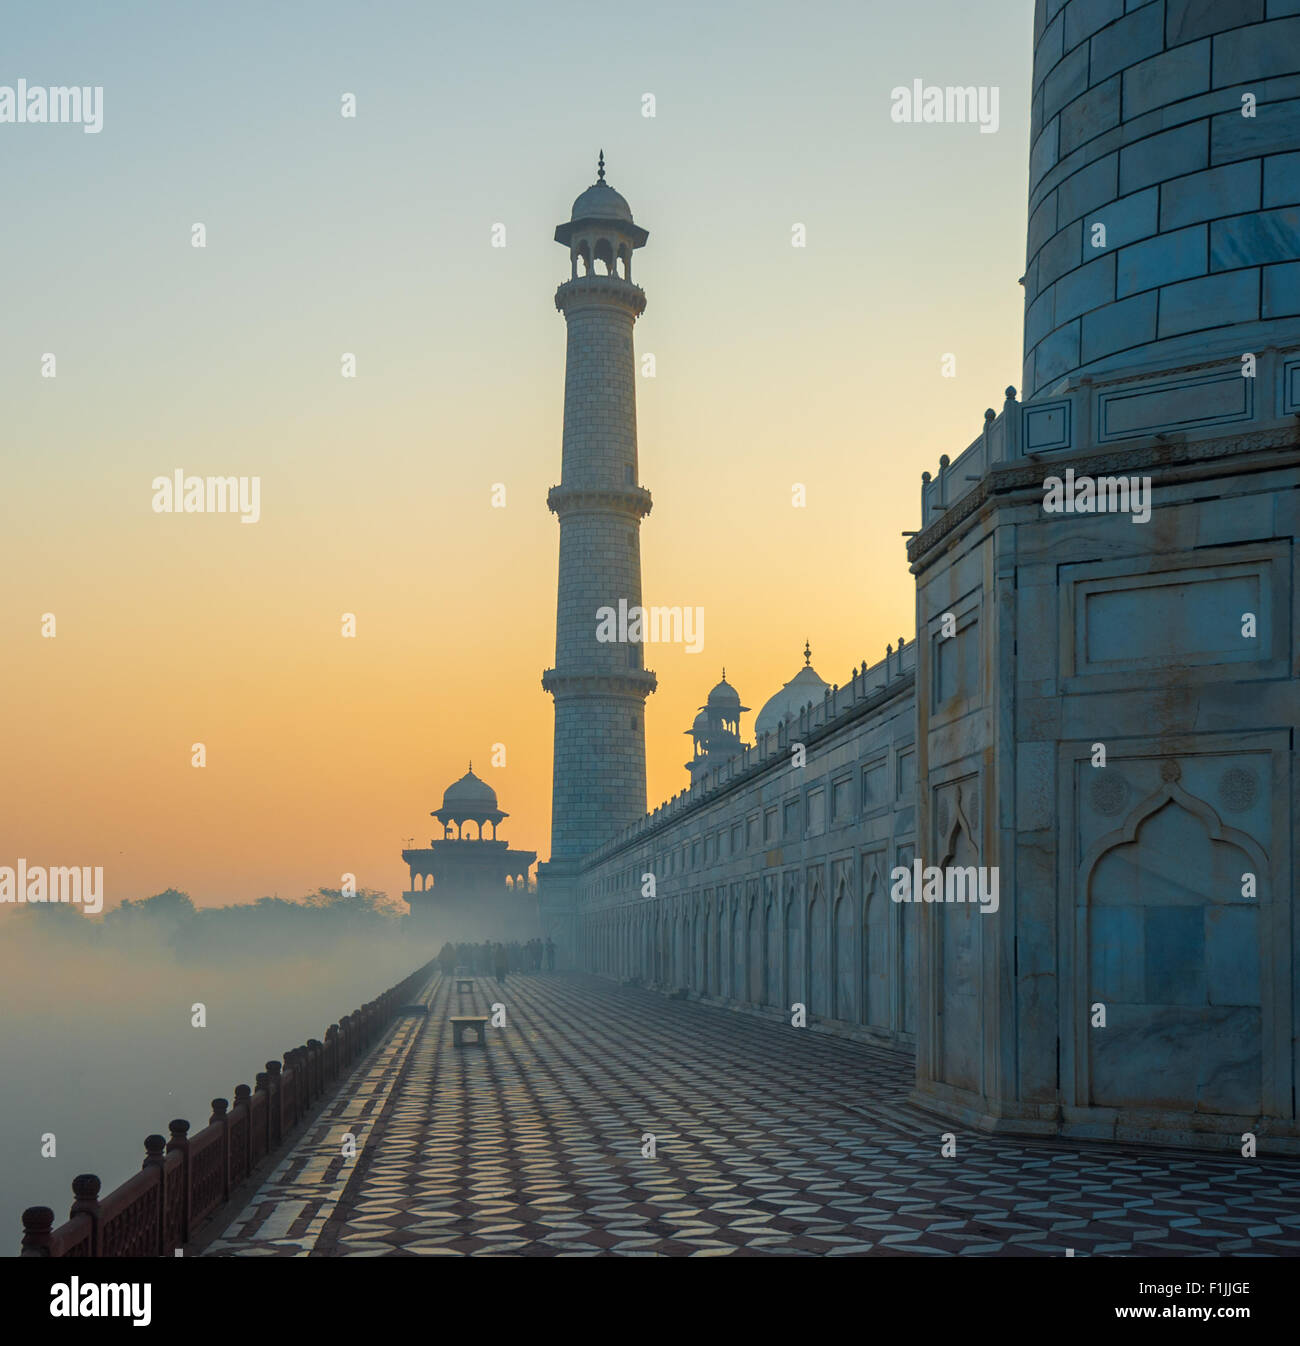 Taj Mahal at sunrise, Agra, India - Stock Image